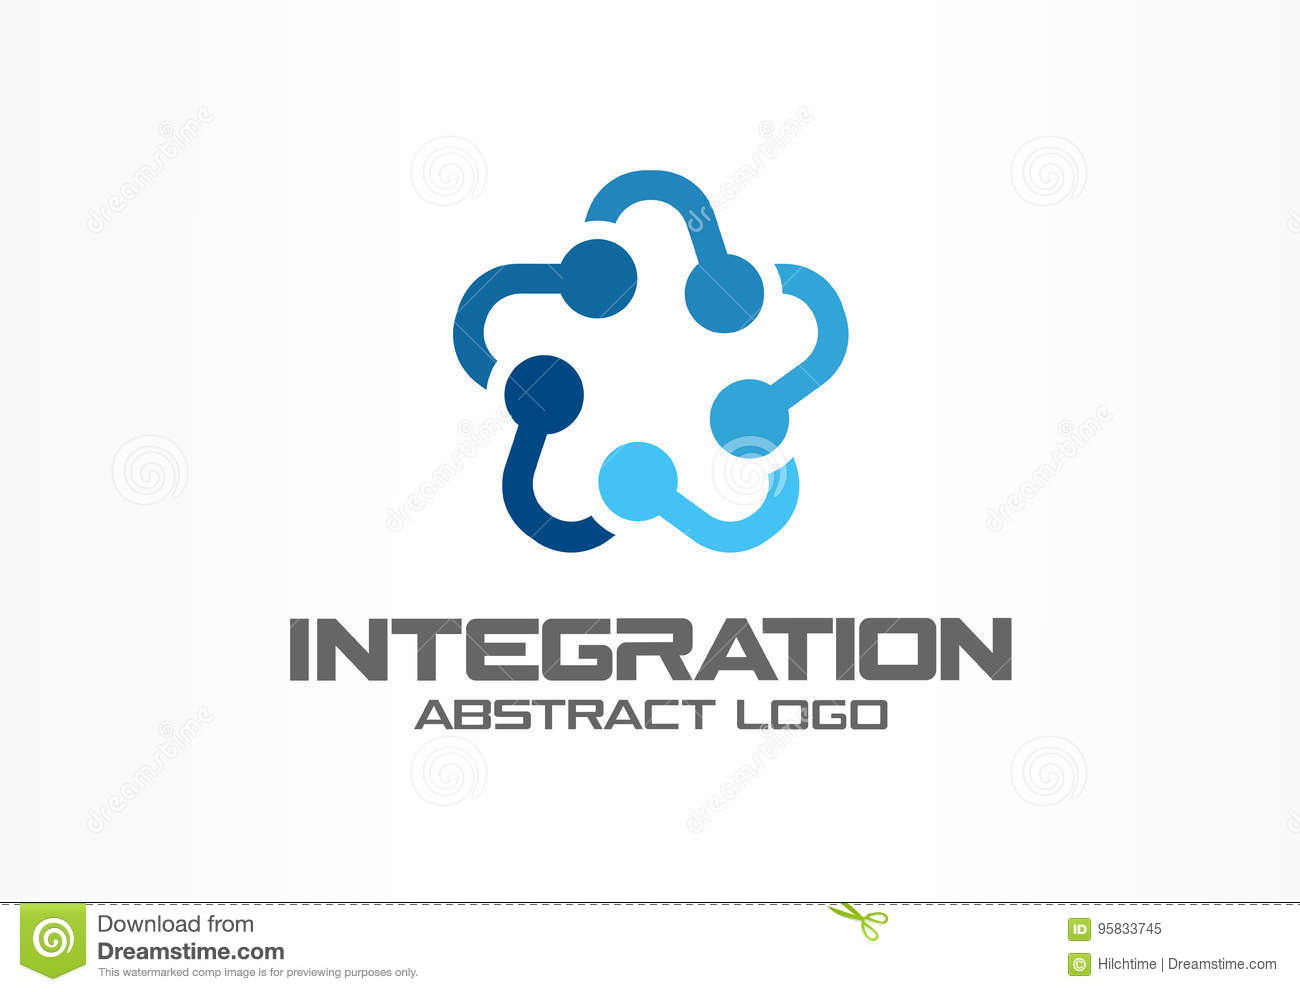 Abstract business company logo. Social media, internet, people connect logotype idea. Star group, network integrate